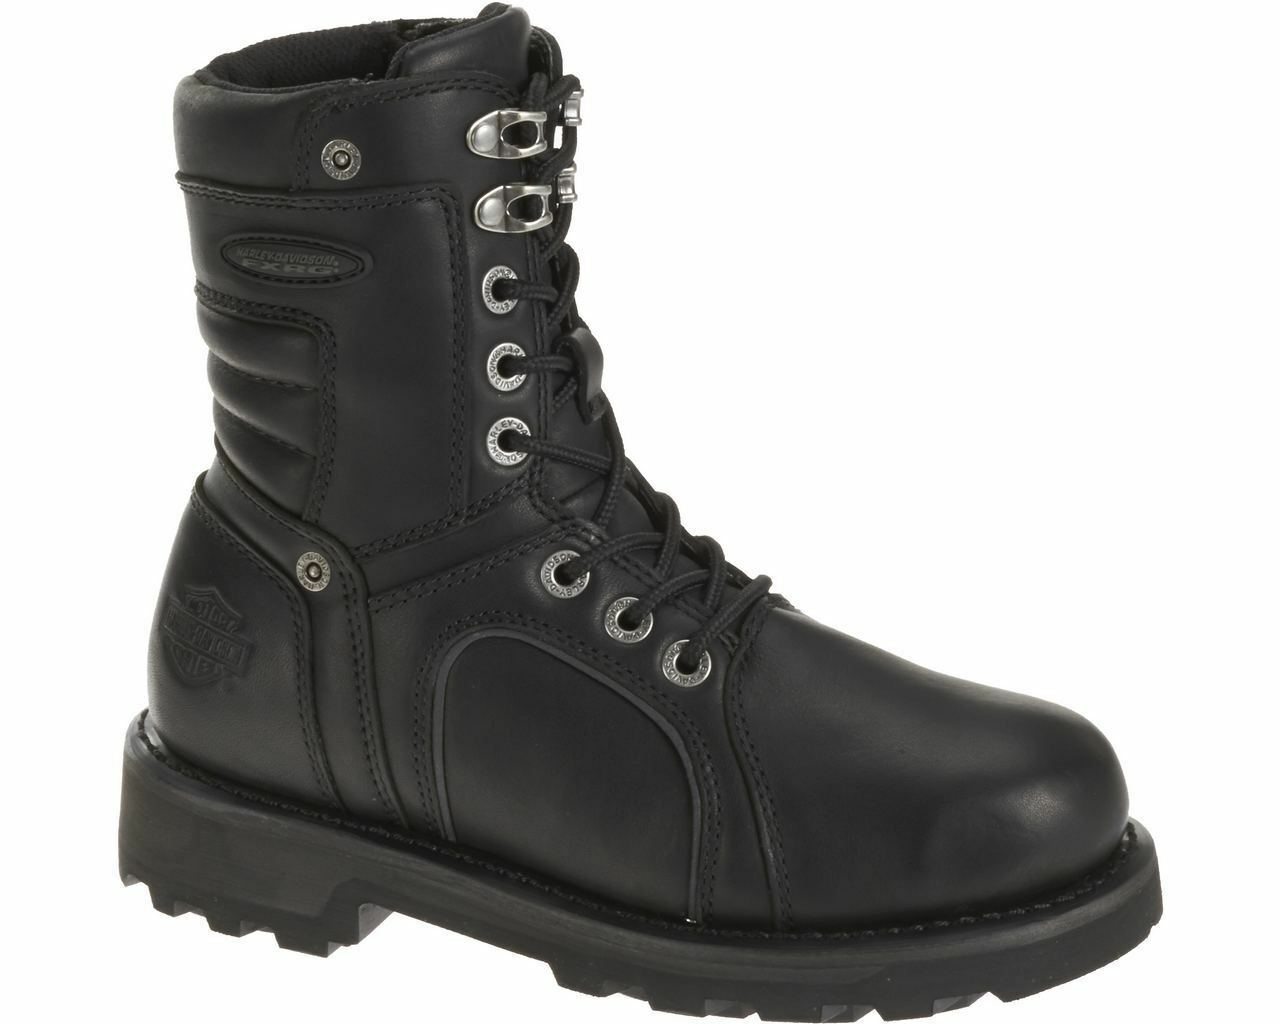 Harley-Davidson ZADORA FXRG Women's Waterproof Riding Black Leather Boots 87064